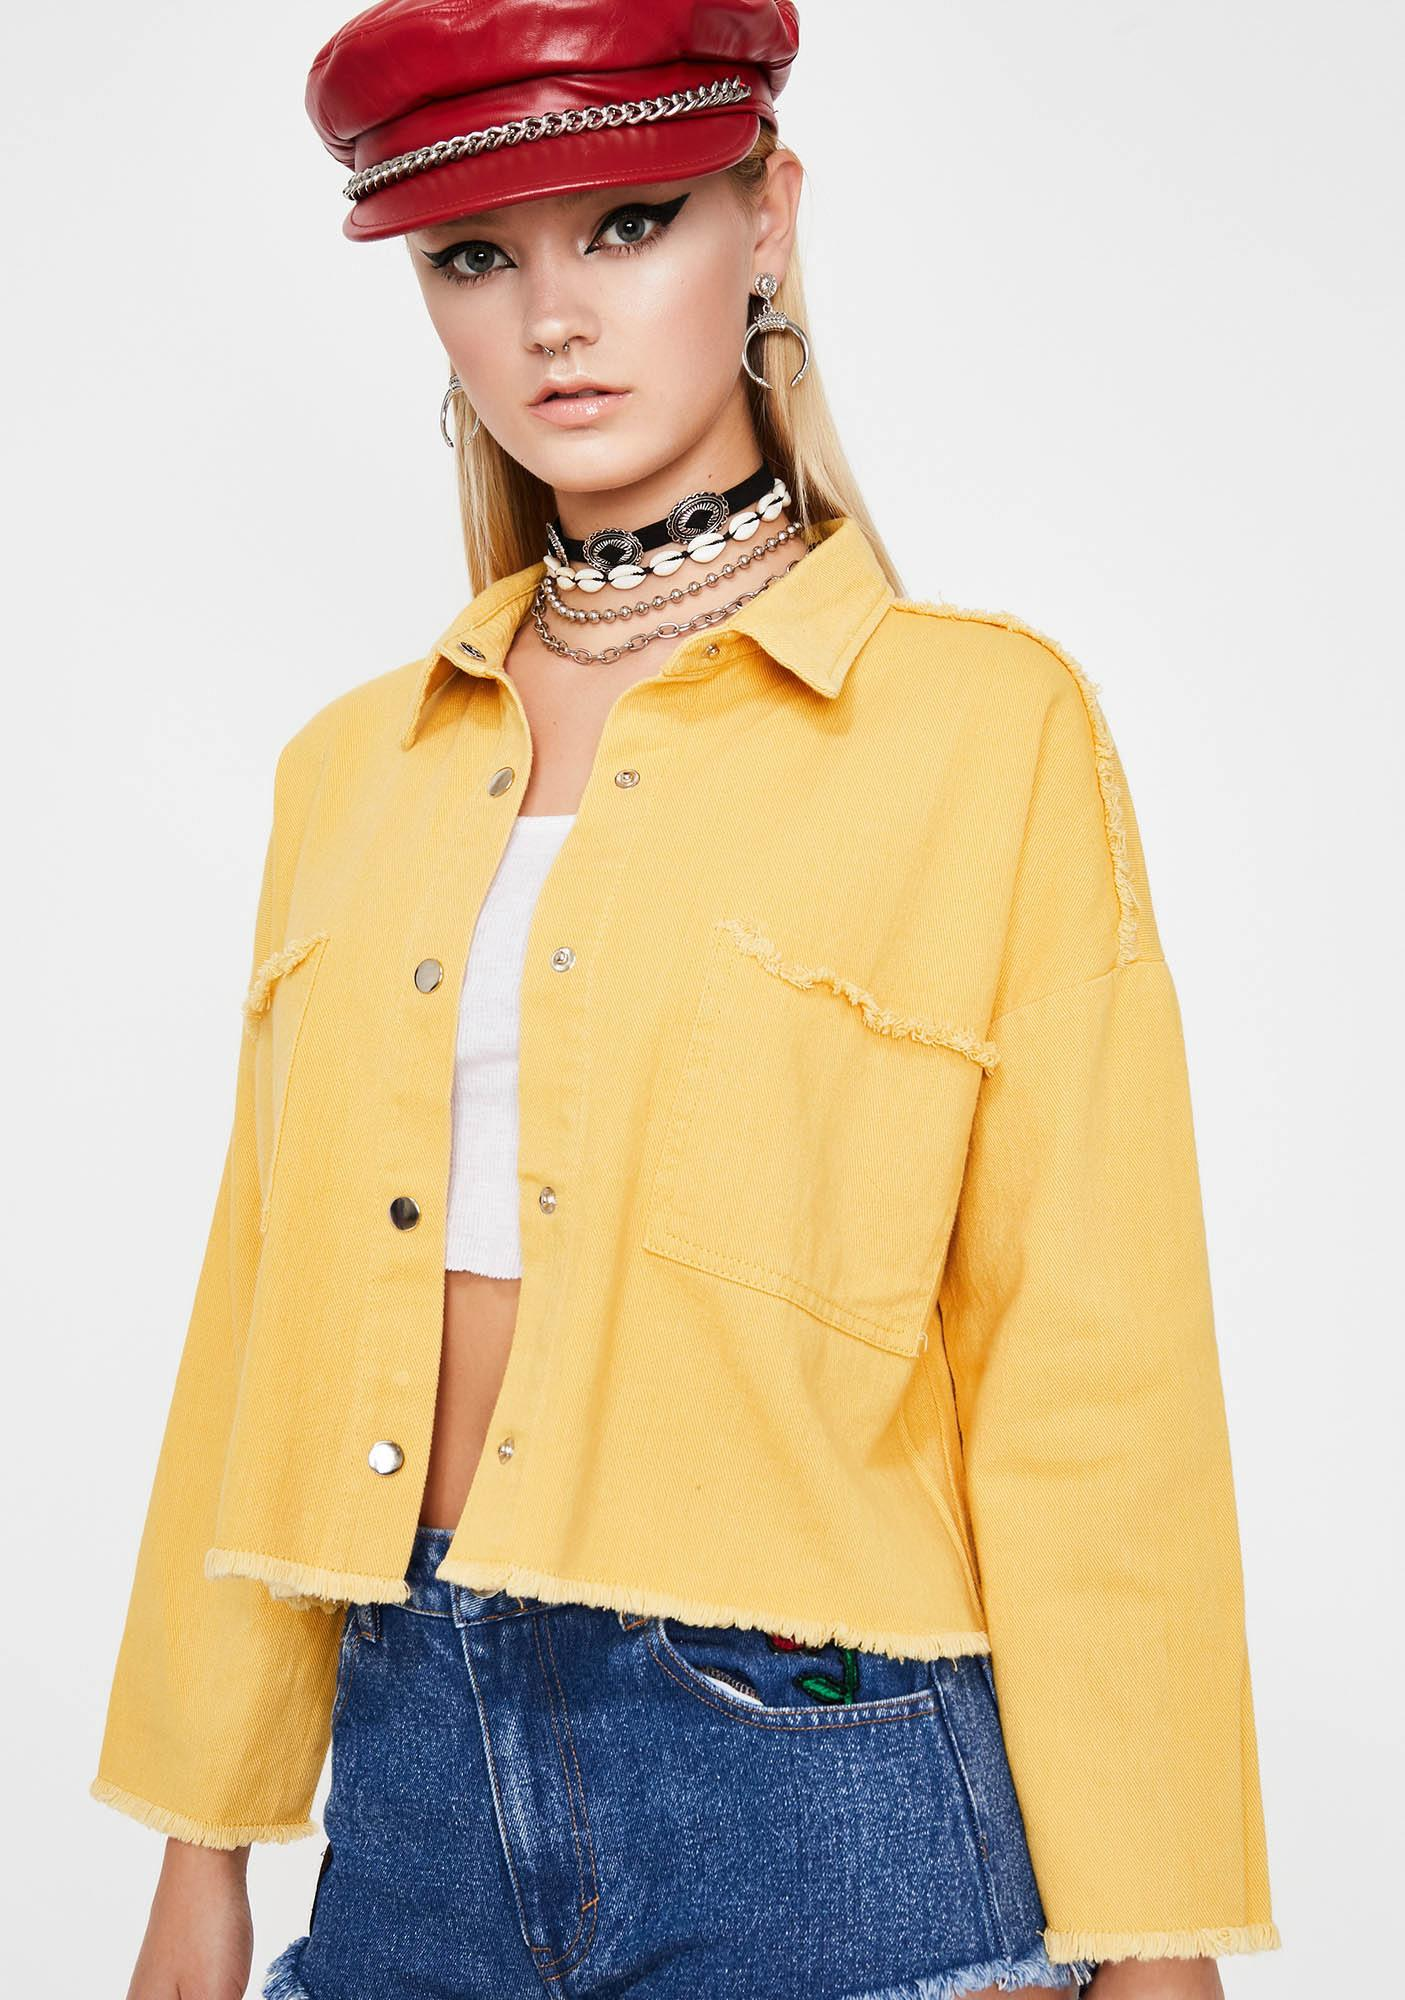 Miles Away Cropped Jacket